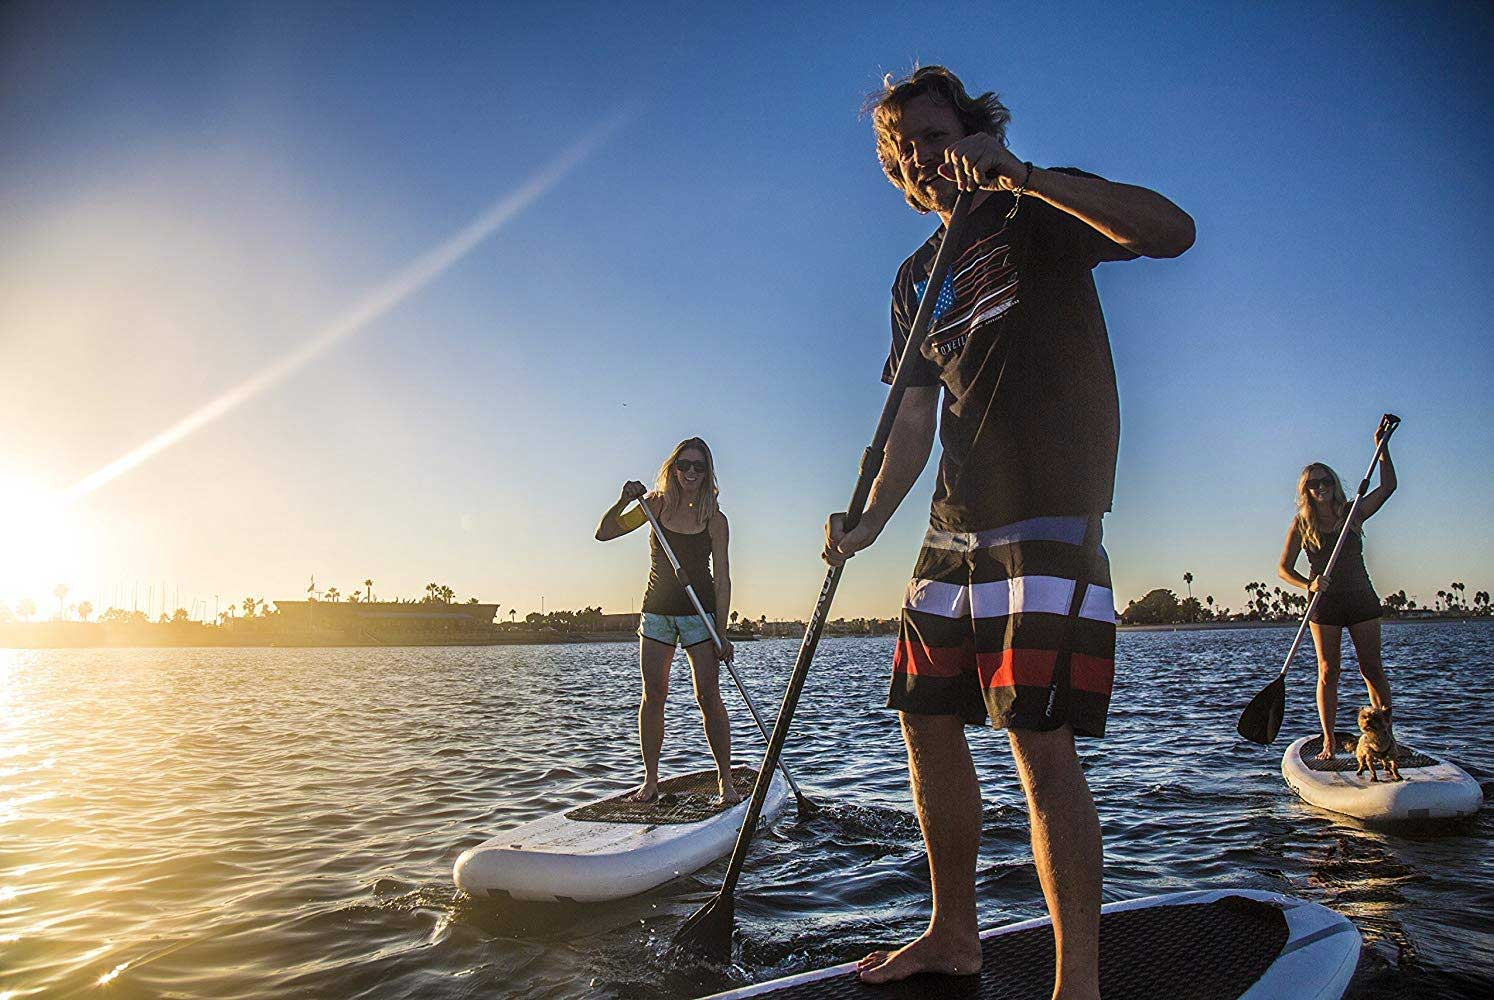 Tower Paddle Board Review with Pros and Cons